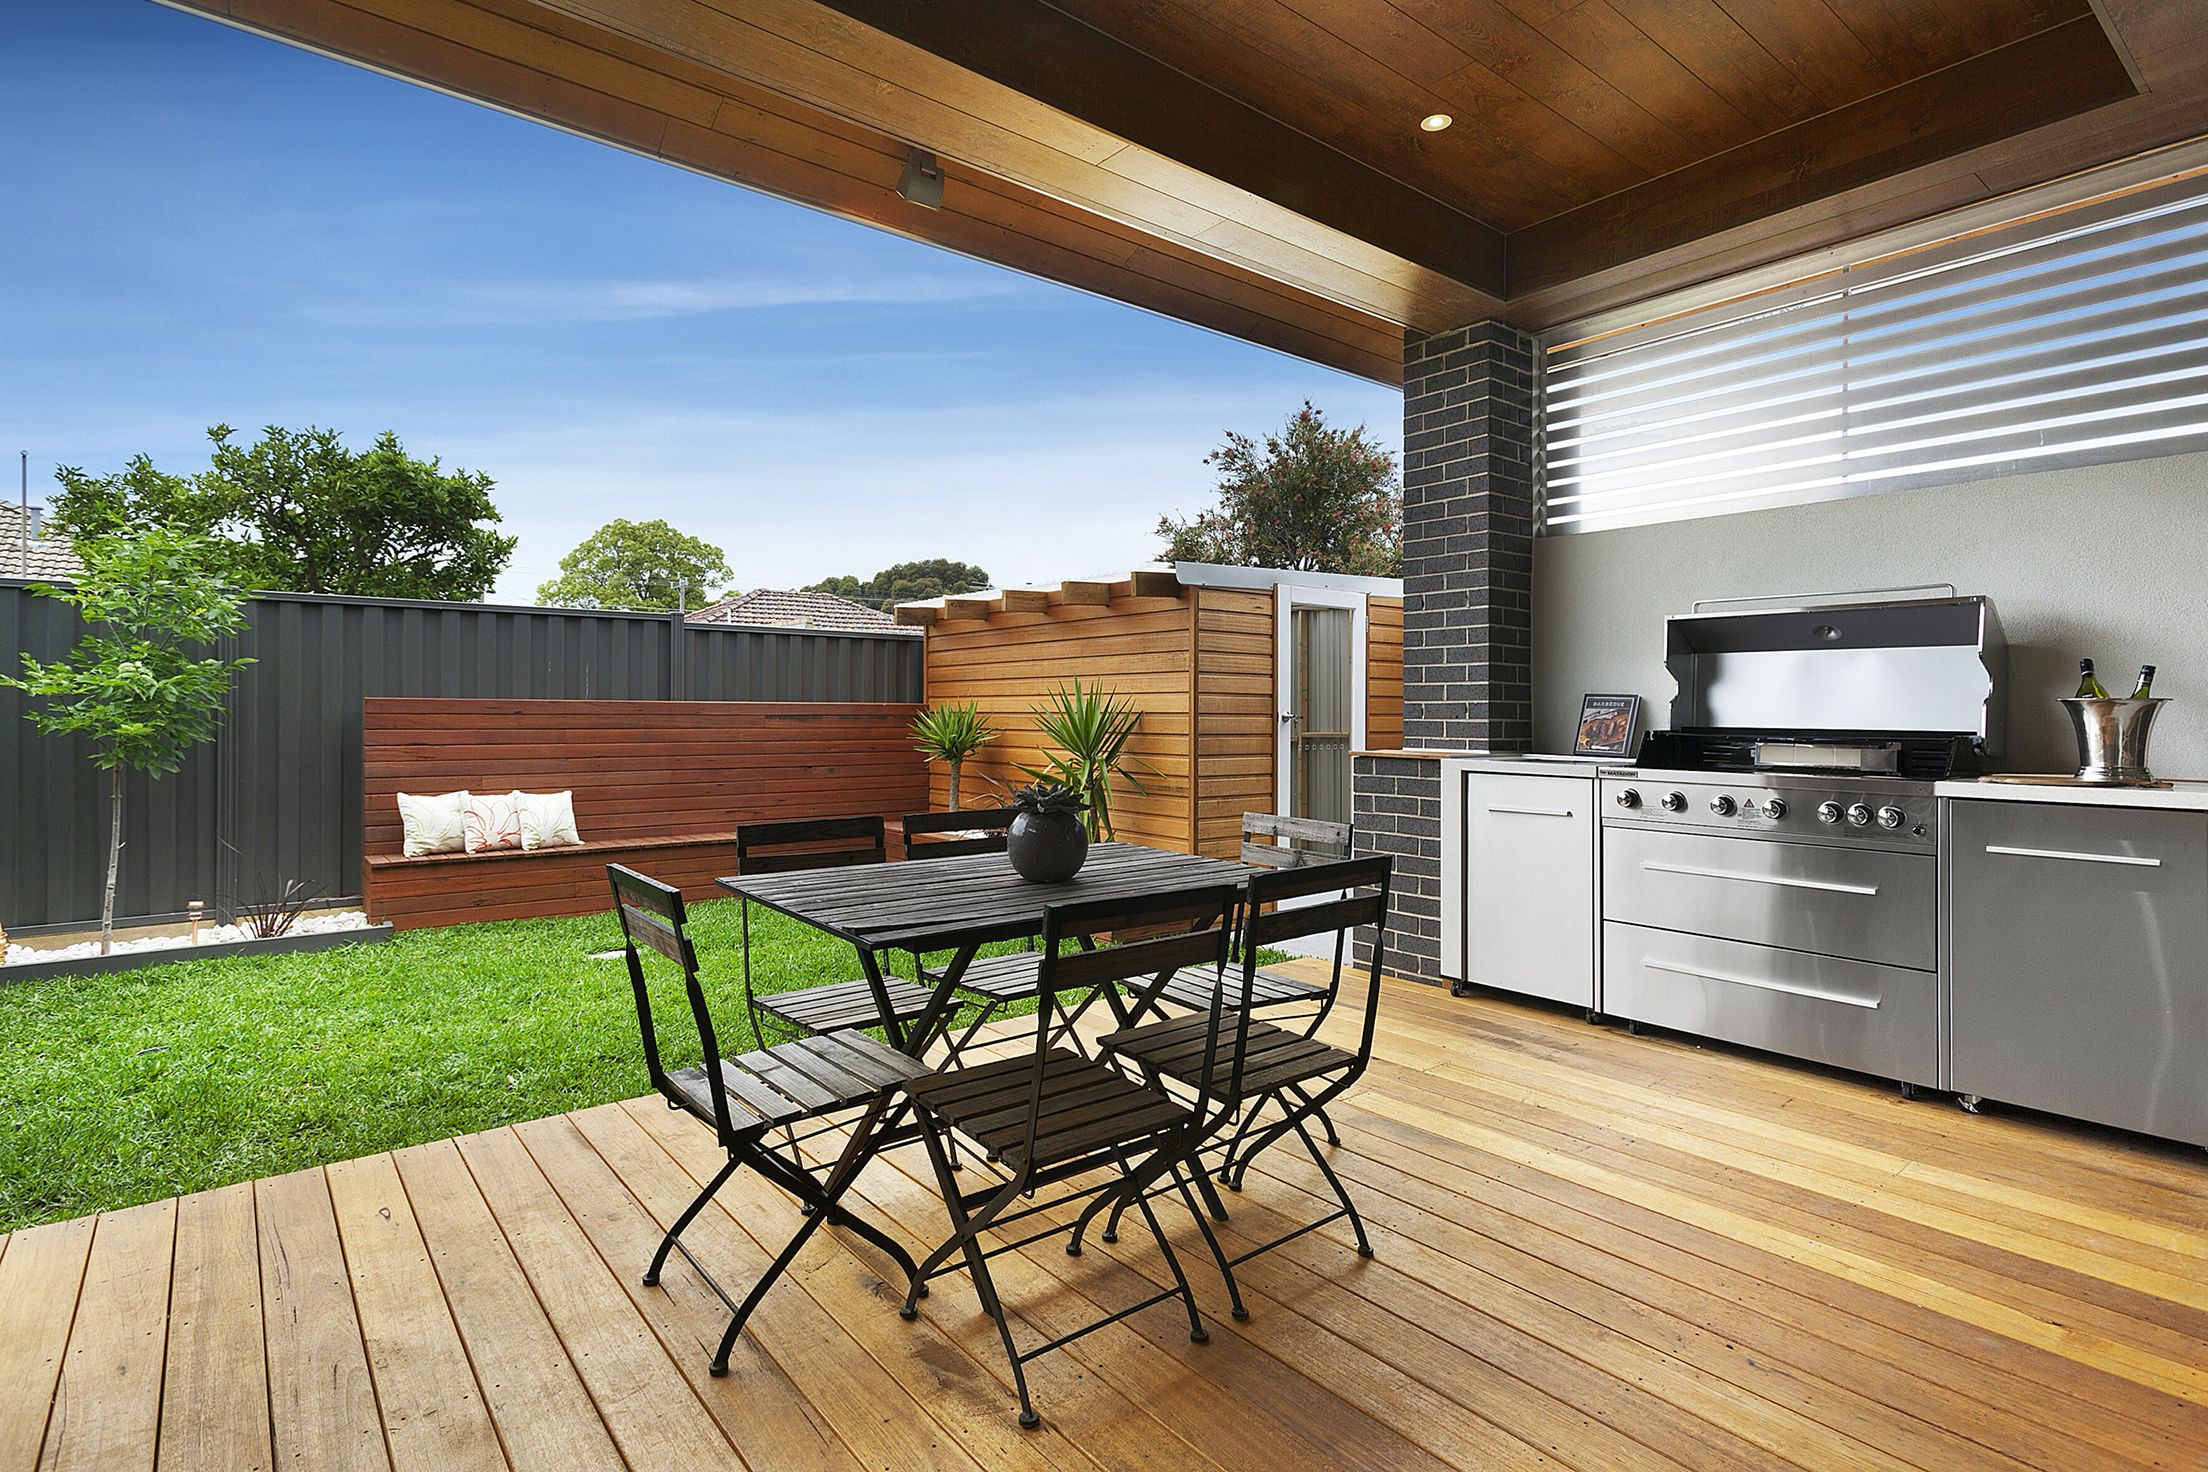 Modern Alfresco Backyard Decking Bbq Built In Small